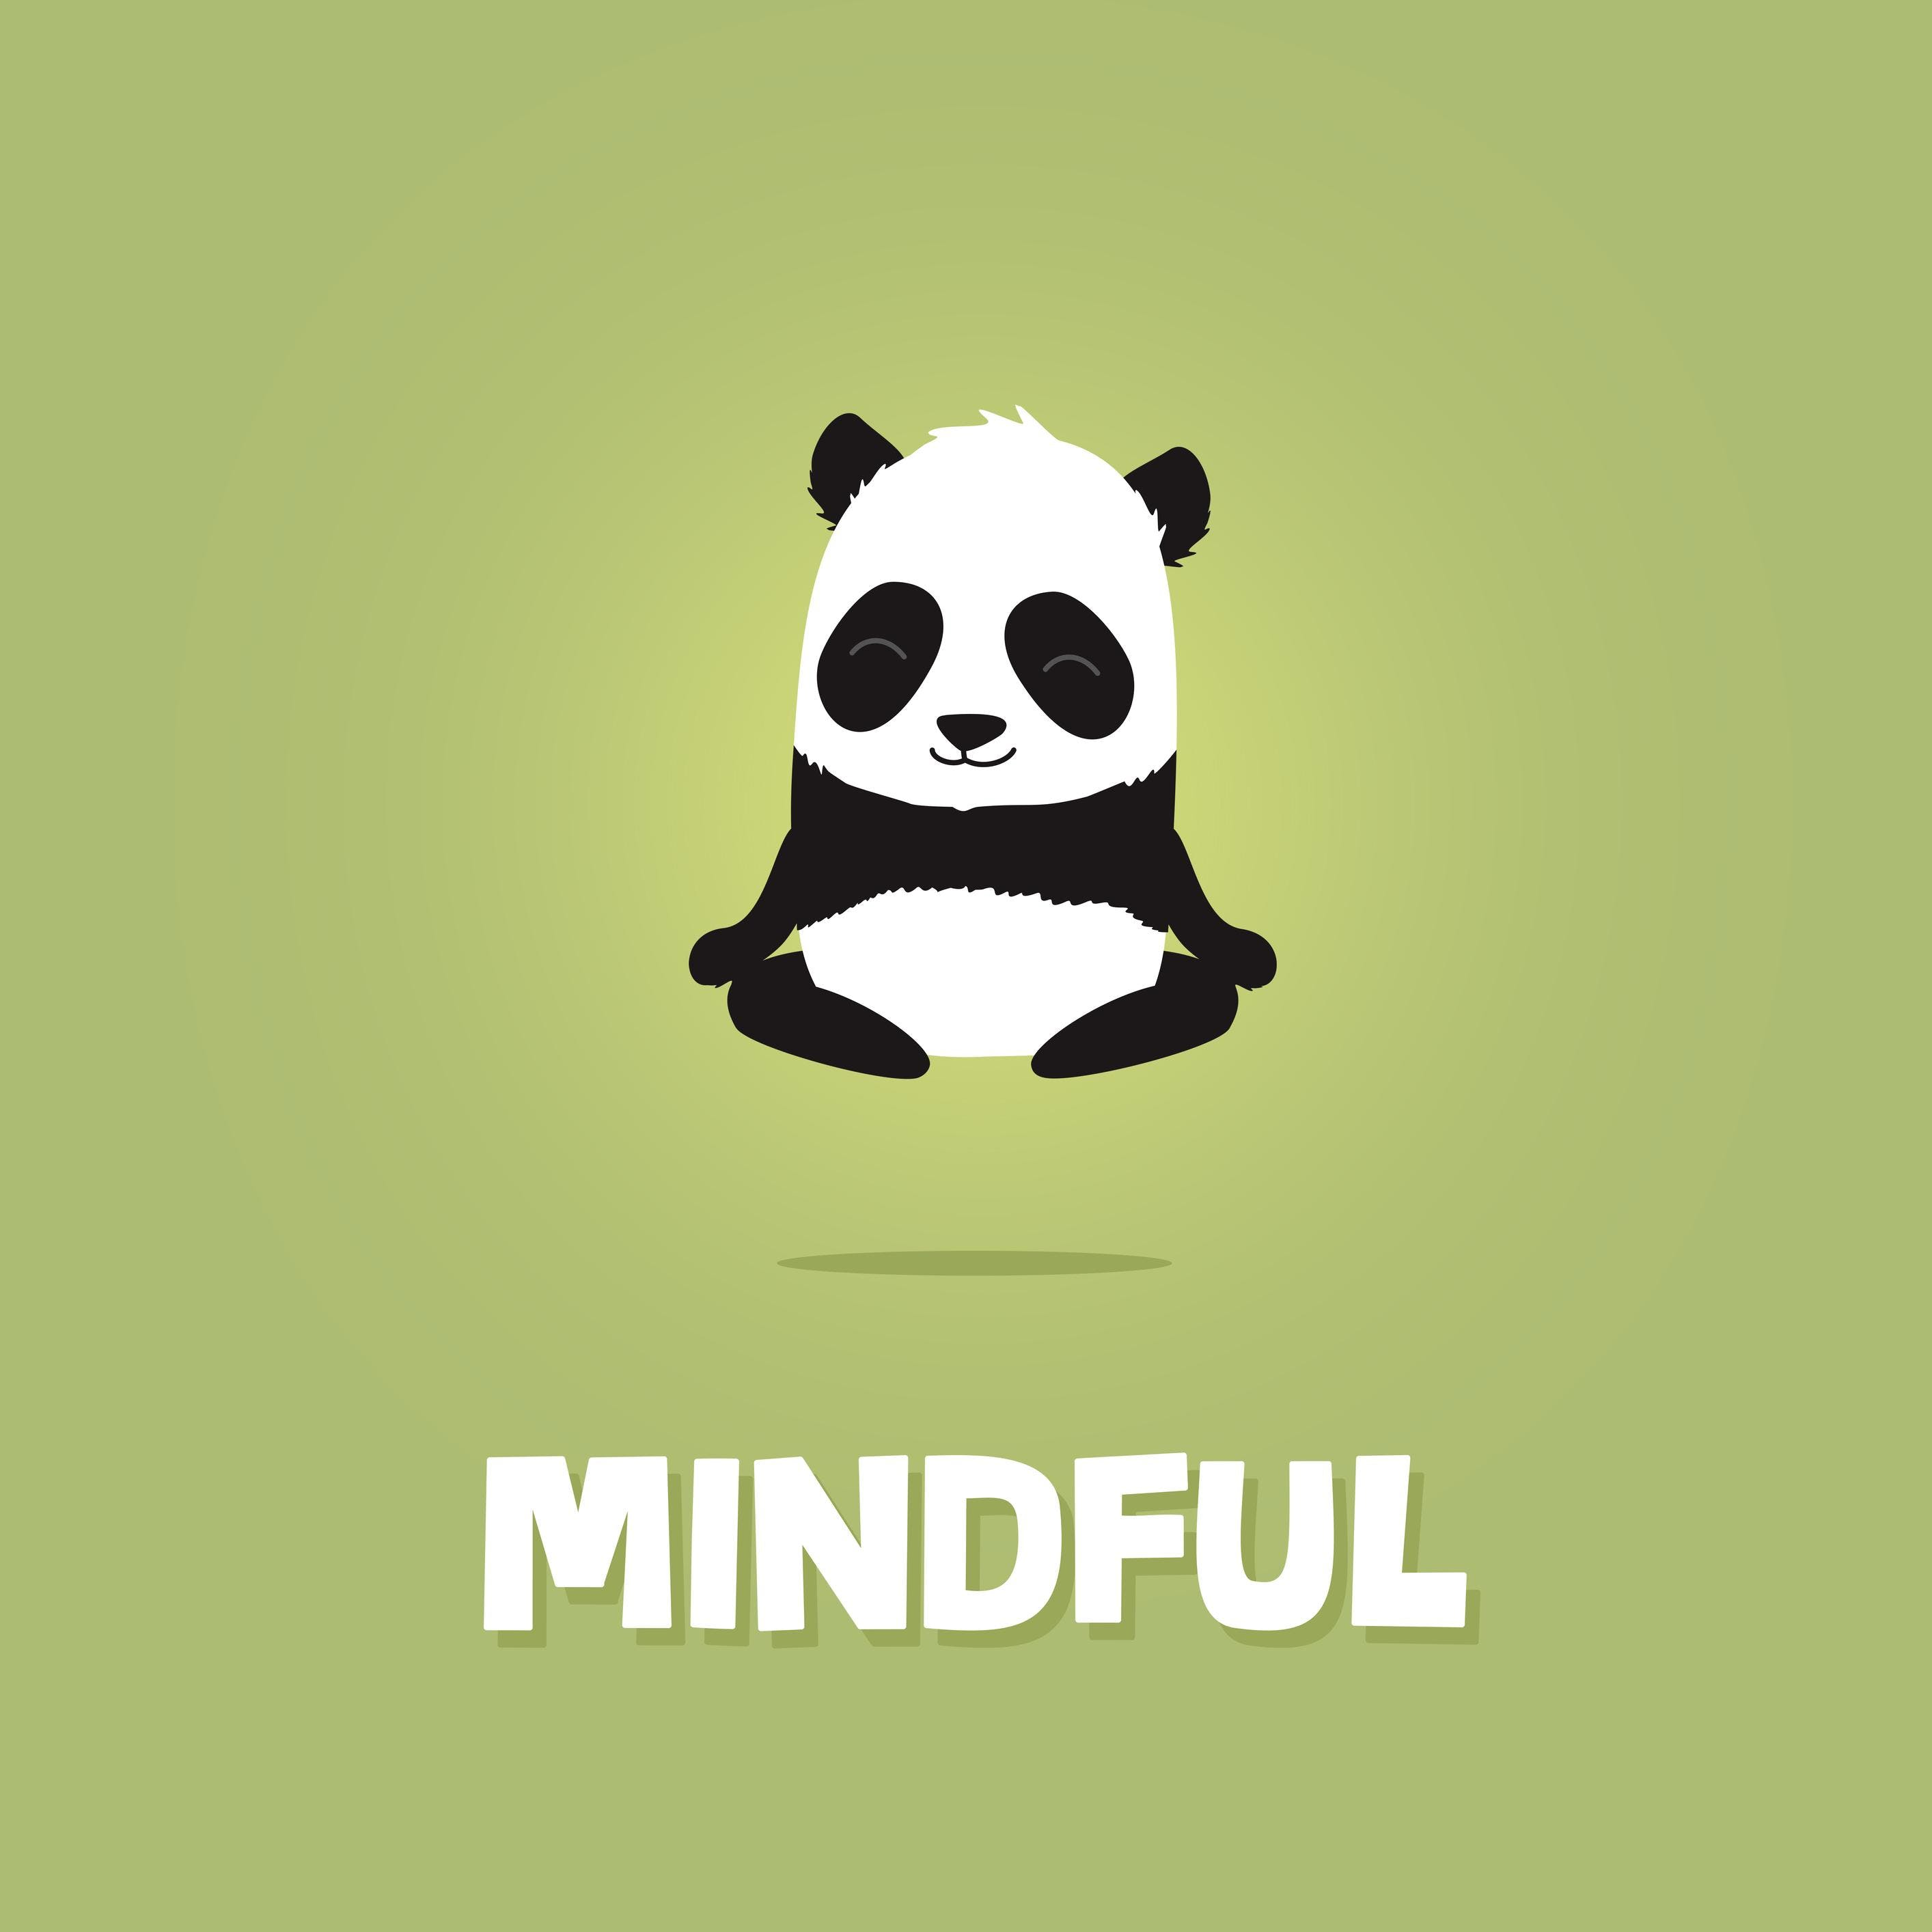 Mindful Mindful Panda workshop foundation